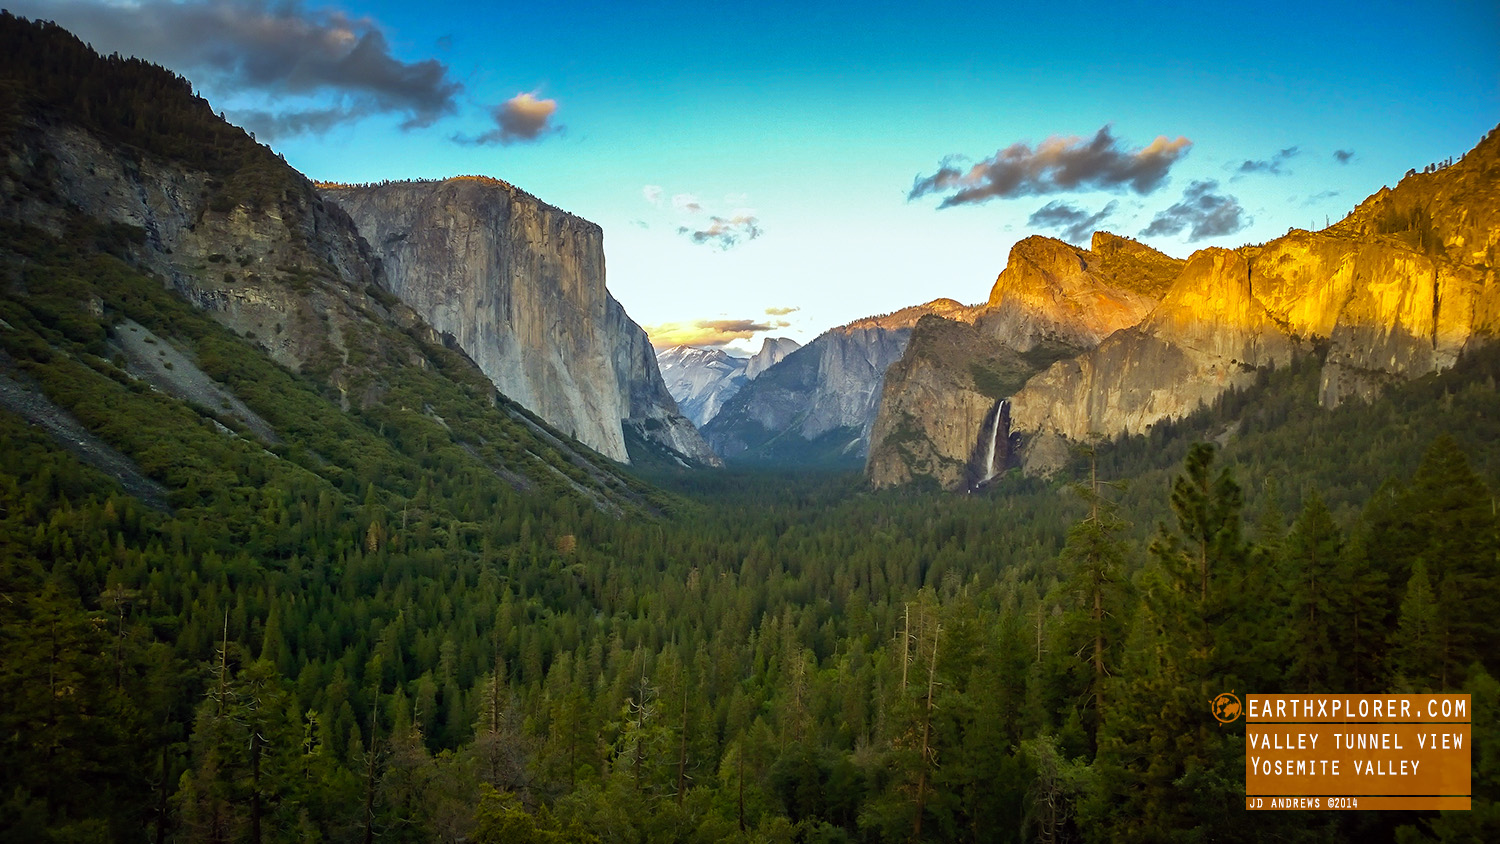 El Capitan, Half Dome and Bridalveil falls - taken with Nokia 1020